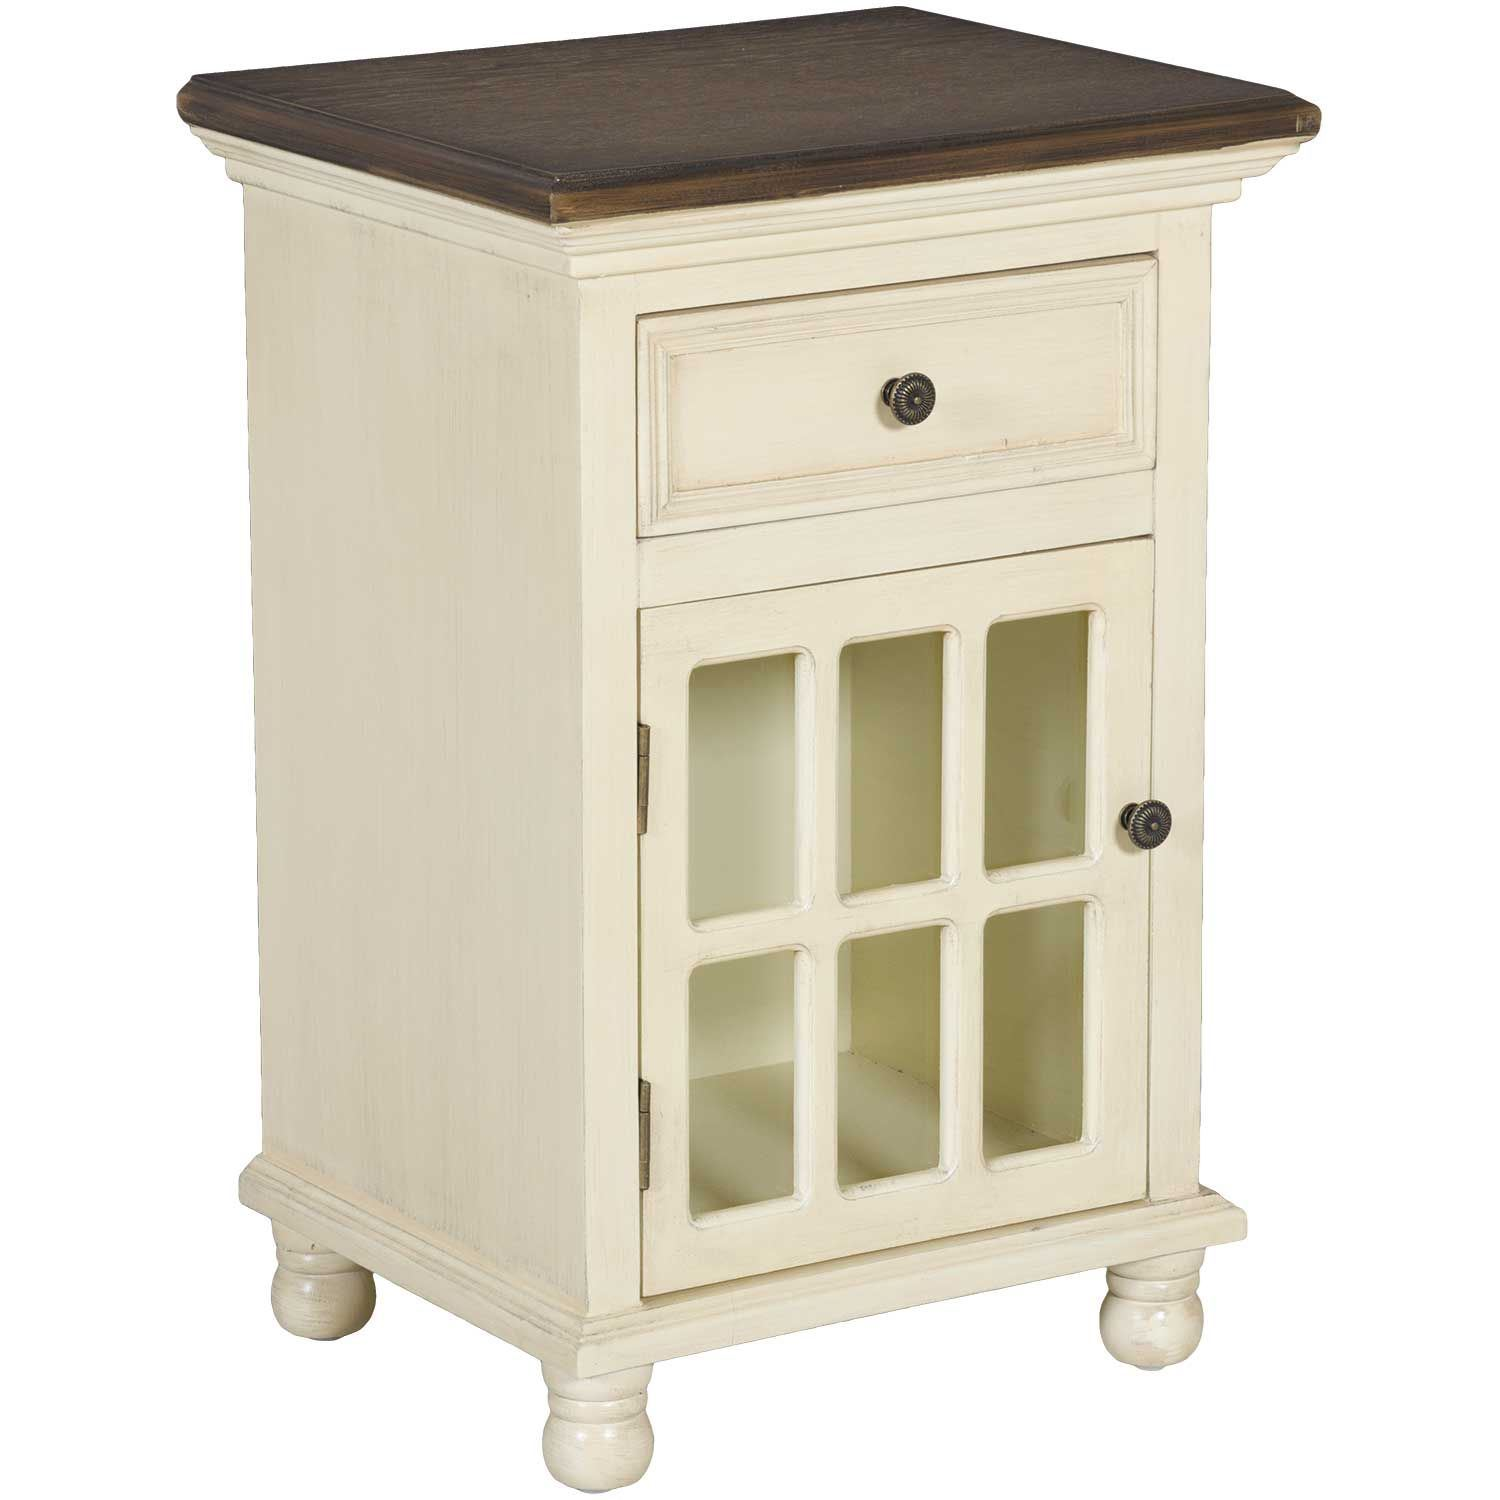 Picture of Accent Cabinet 1 Drawer 1 Door